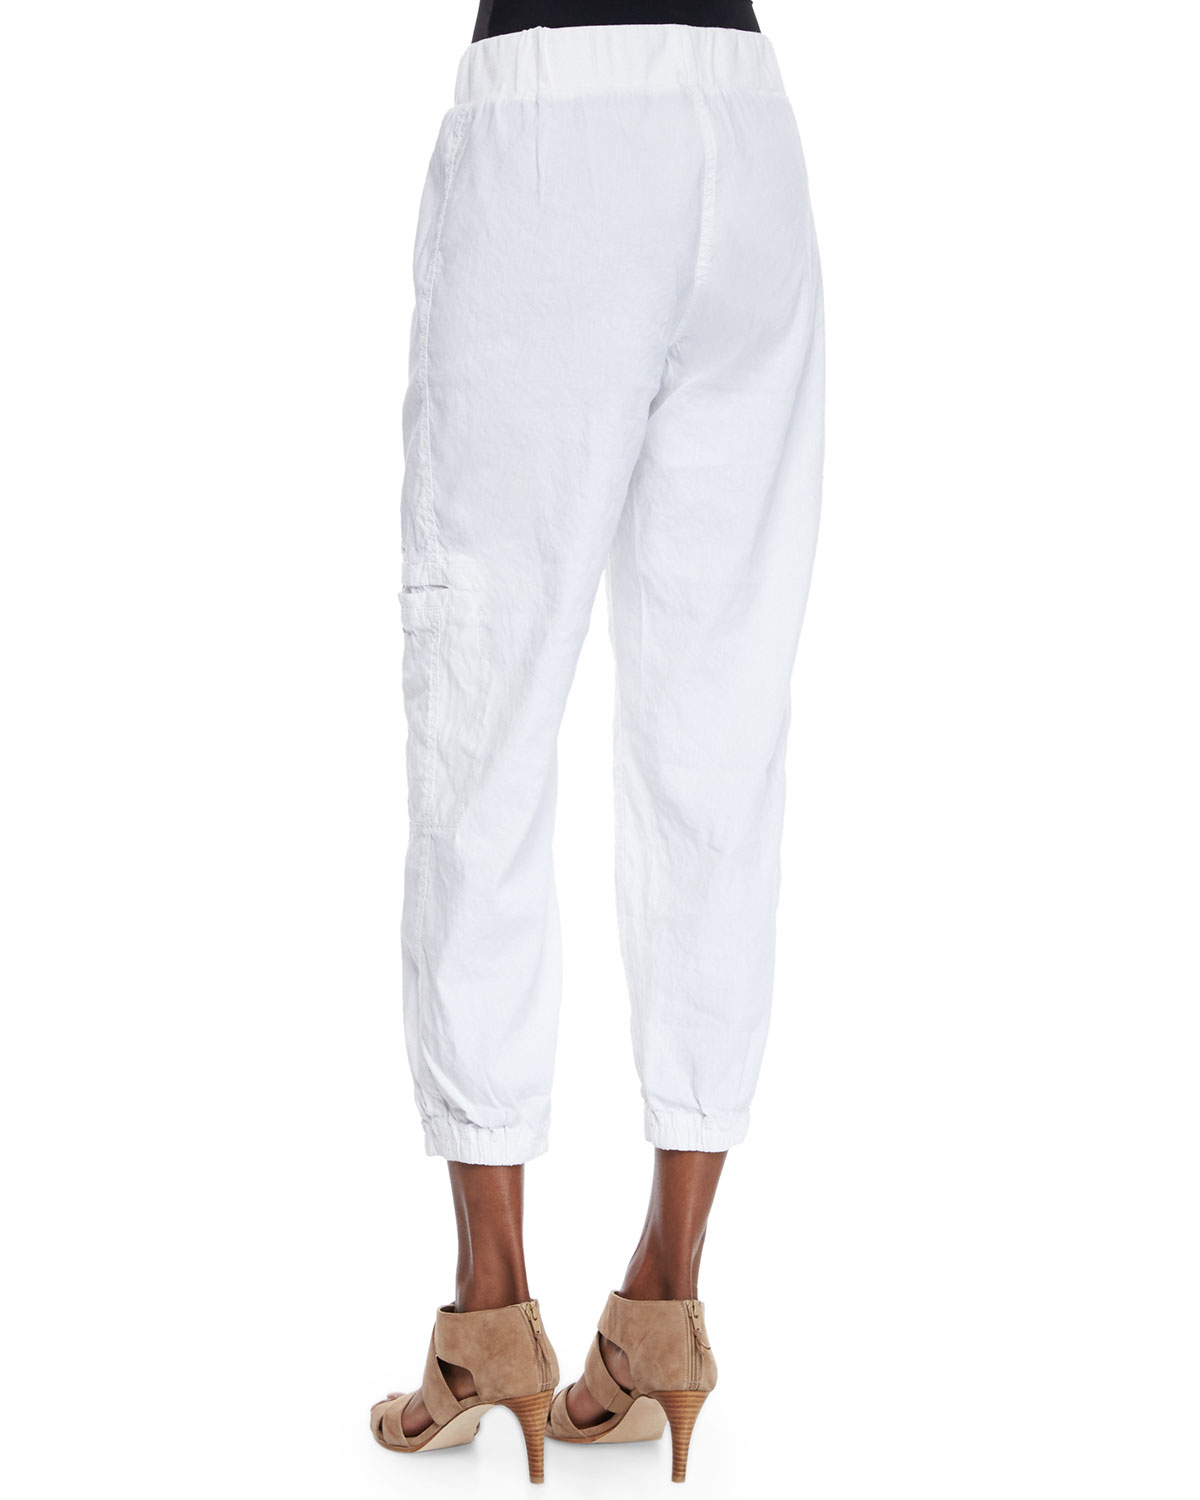 Eileen fisher Linen-blend Cargo Ankle Pants in White | Lyst